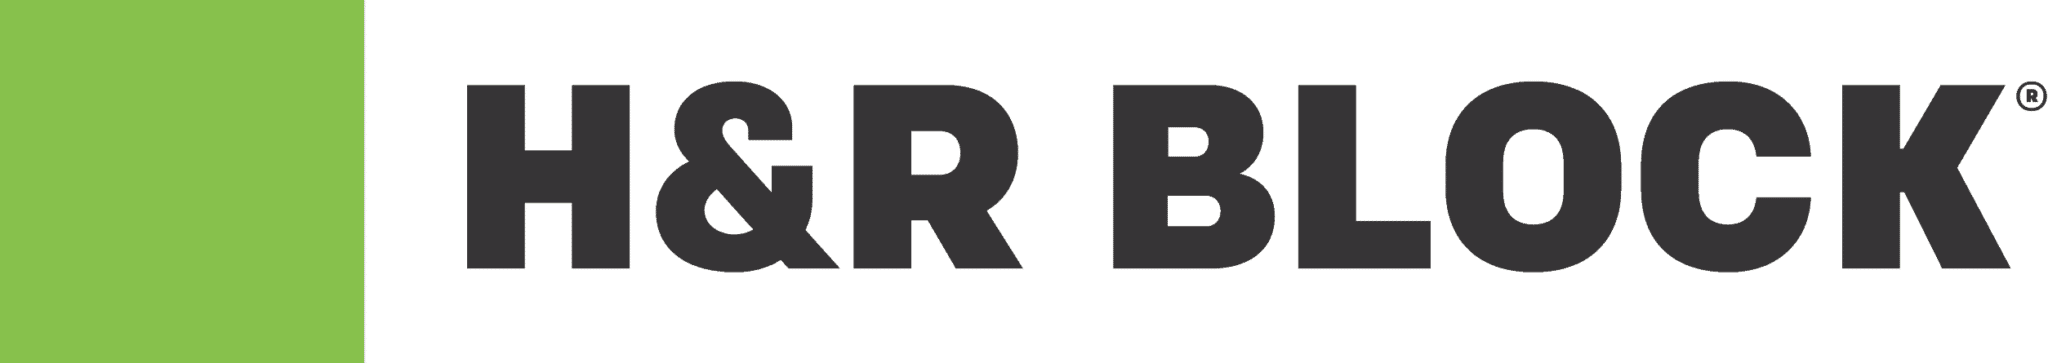 HR Block Logo